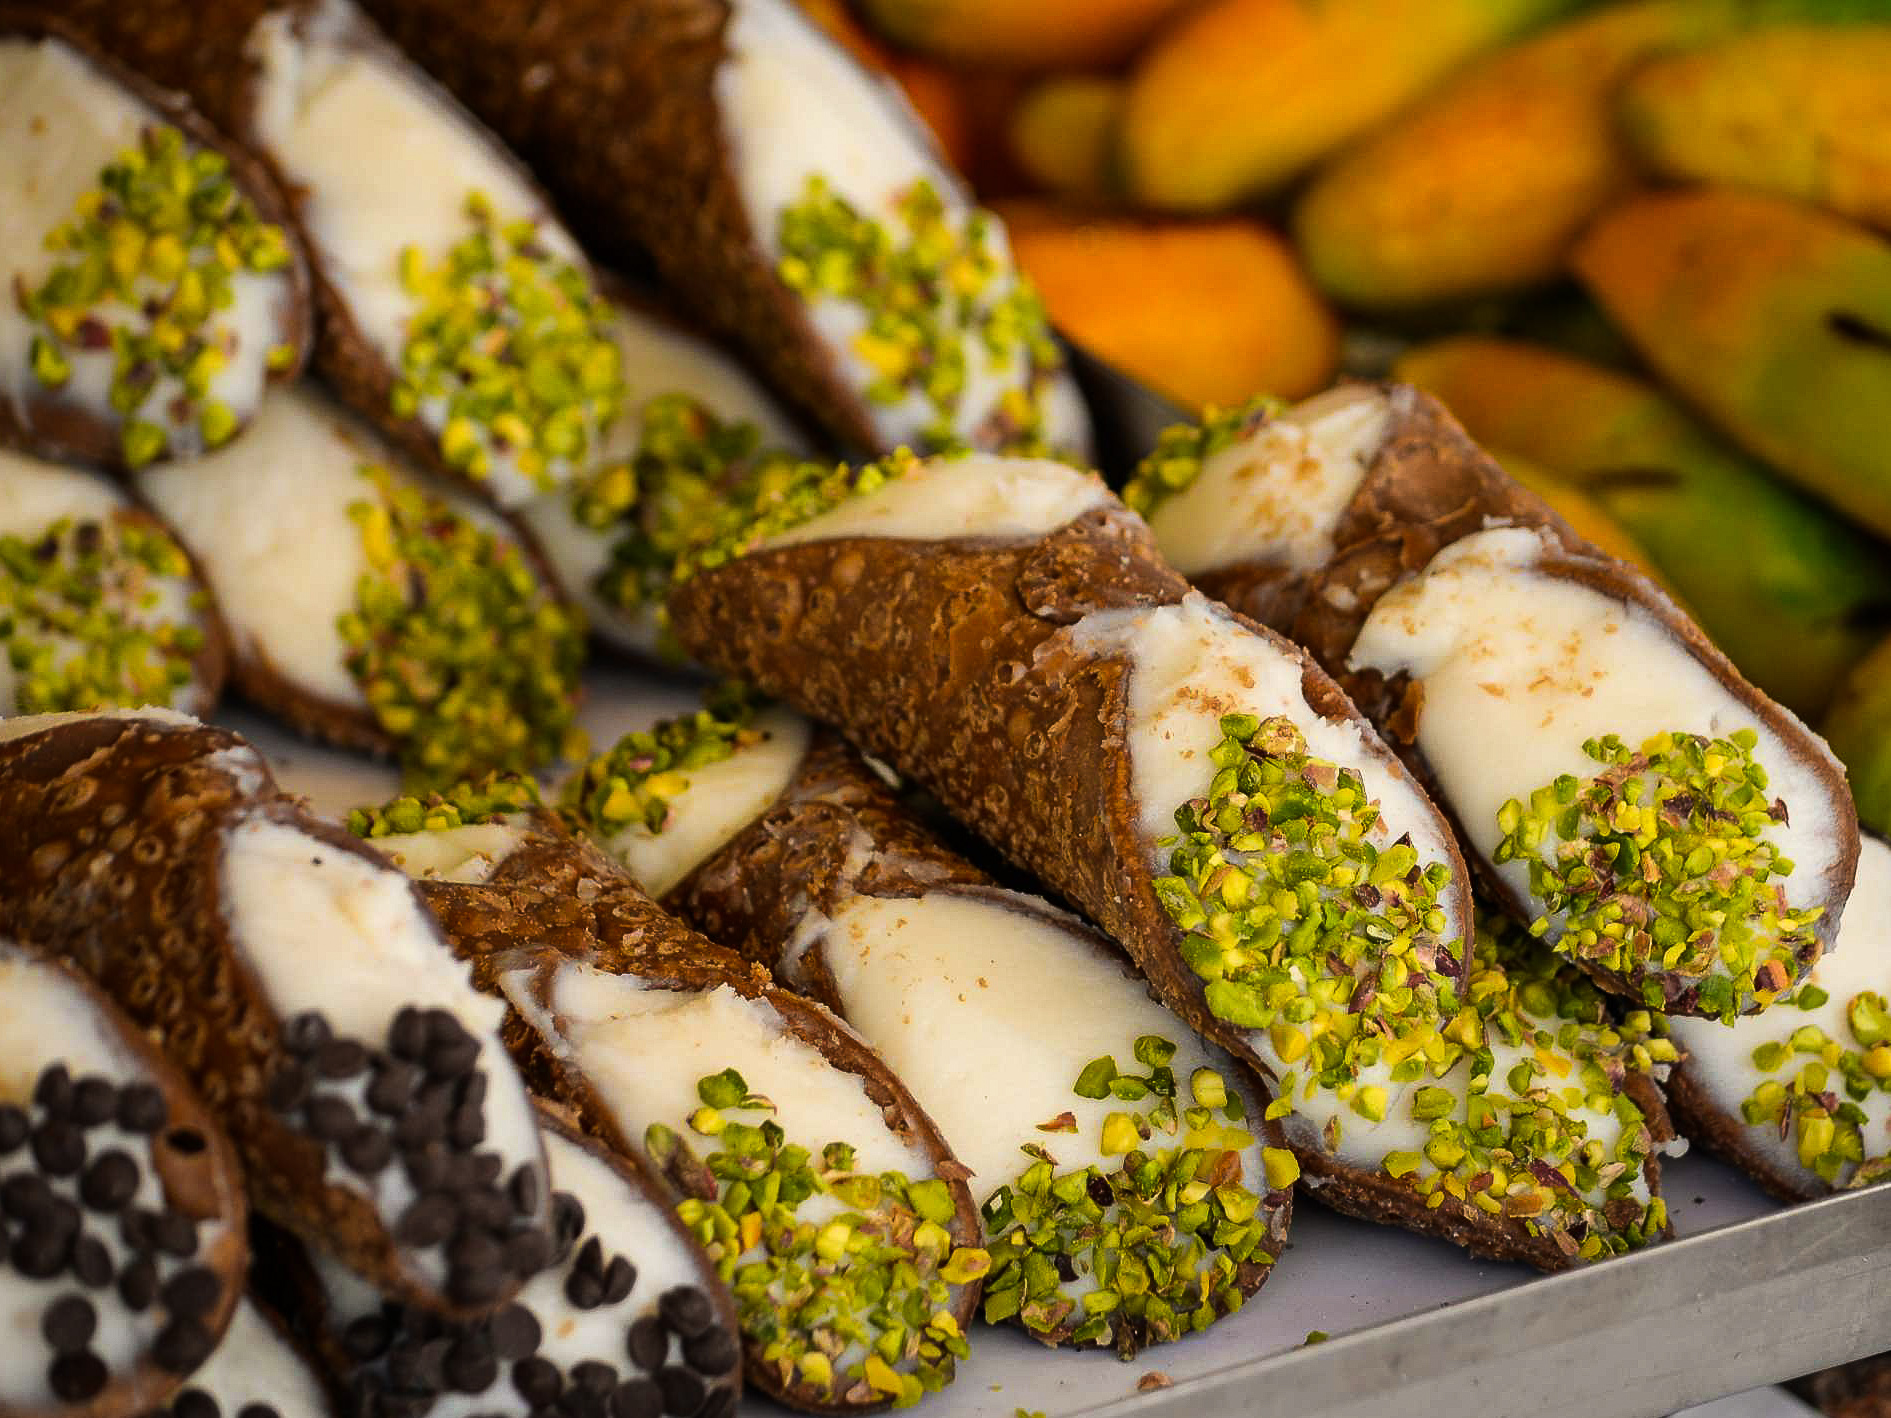 Cannoli with pistachios